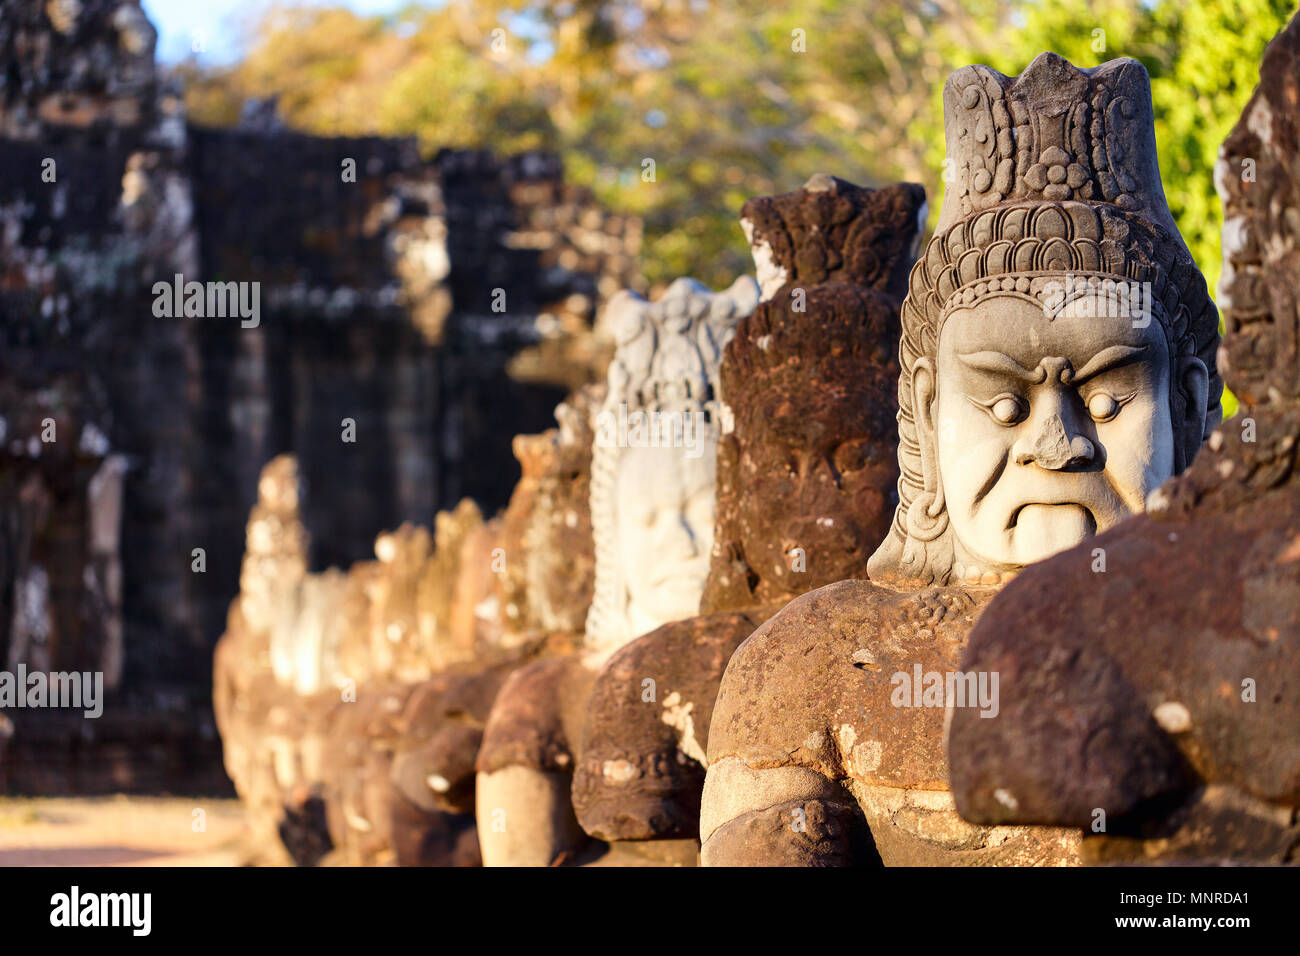 Cancello Sud statue in Angkor area archeologica in Cambogia Immagini Stock